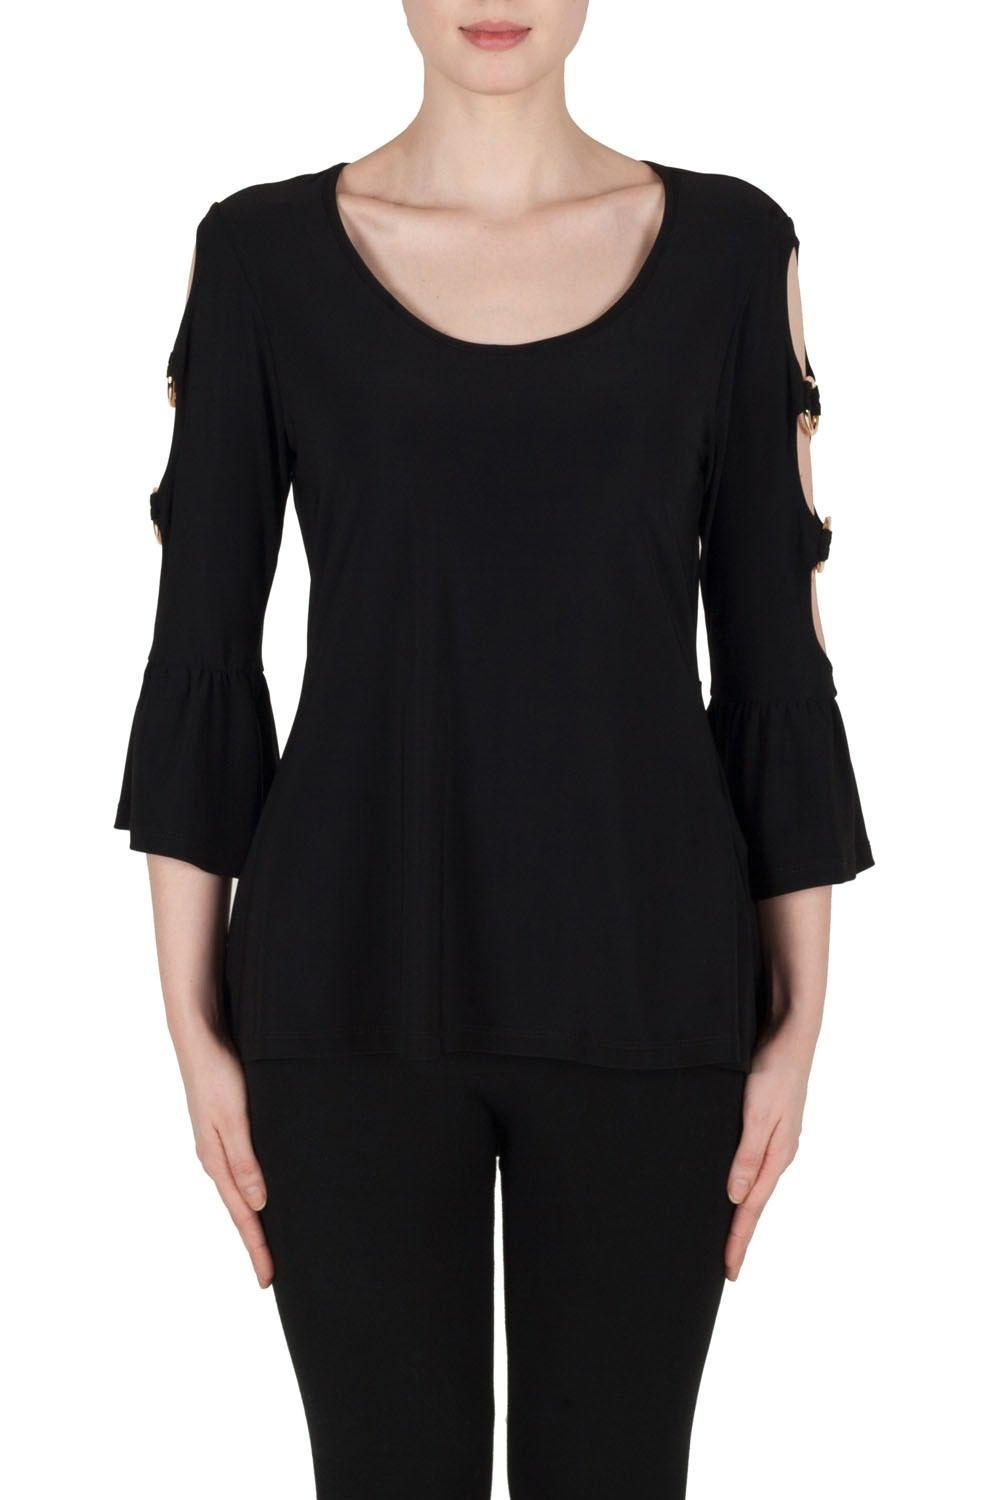 Joseph Ribkoff Black Top With Bell-Style Sleeves Style 173104, Size 4 by Joseph Ribkoff